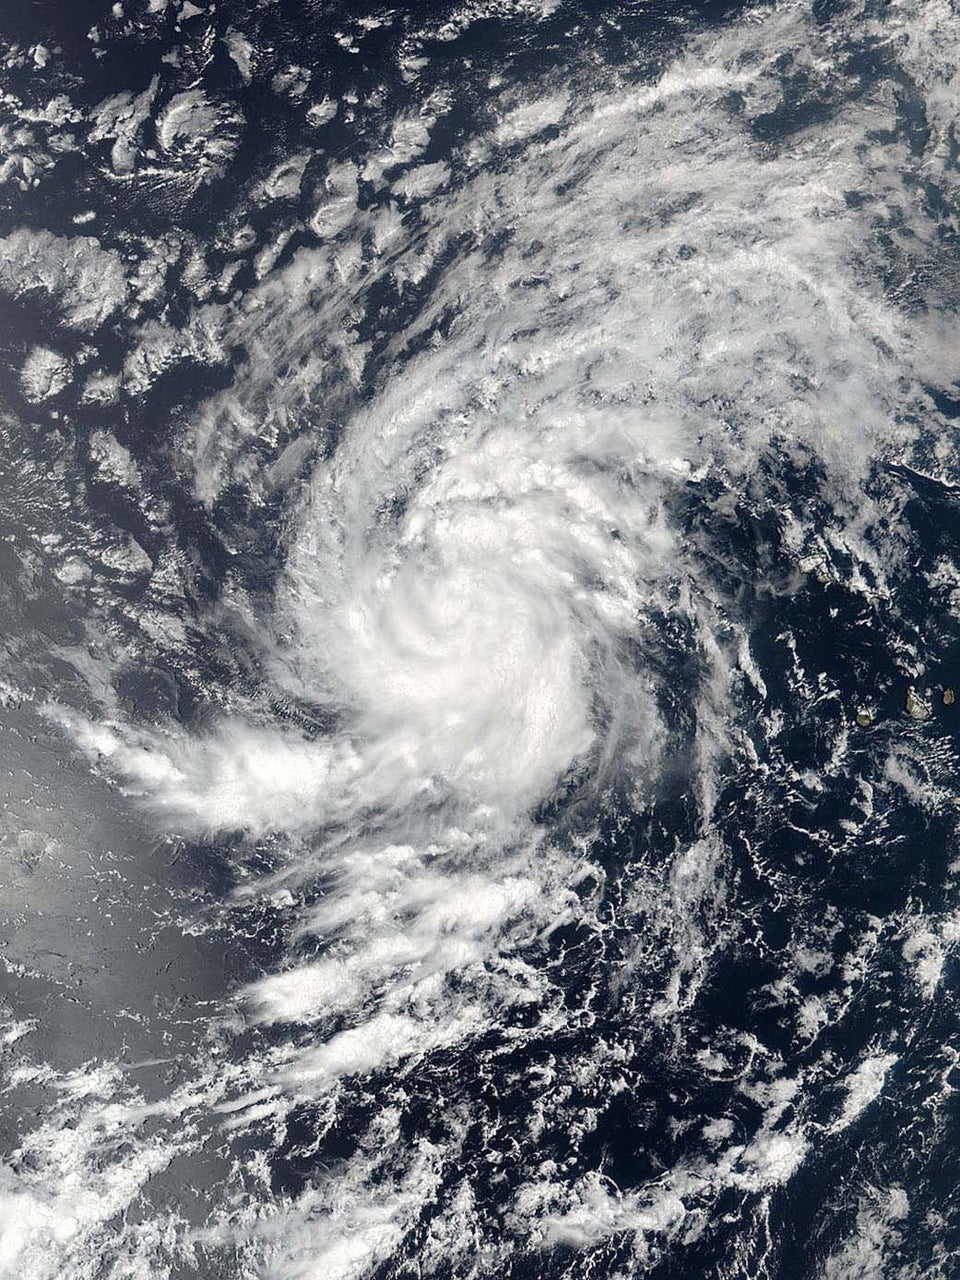 So This Is Why Hurricanes Are Given Human Names